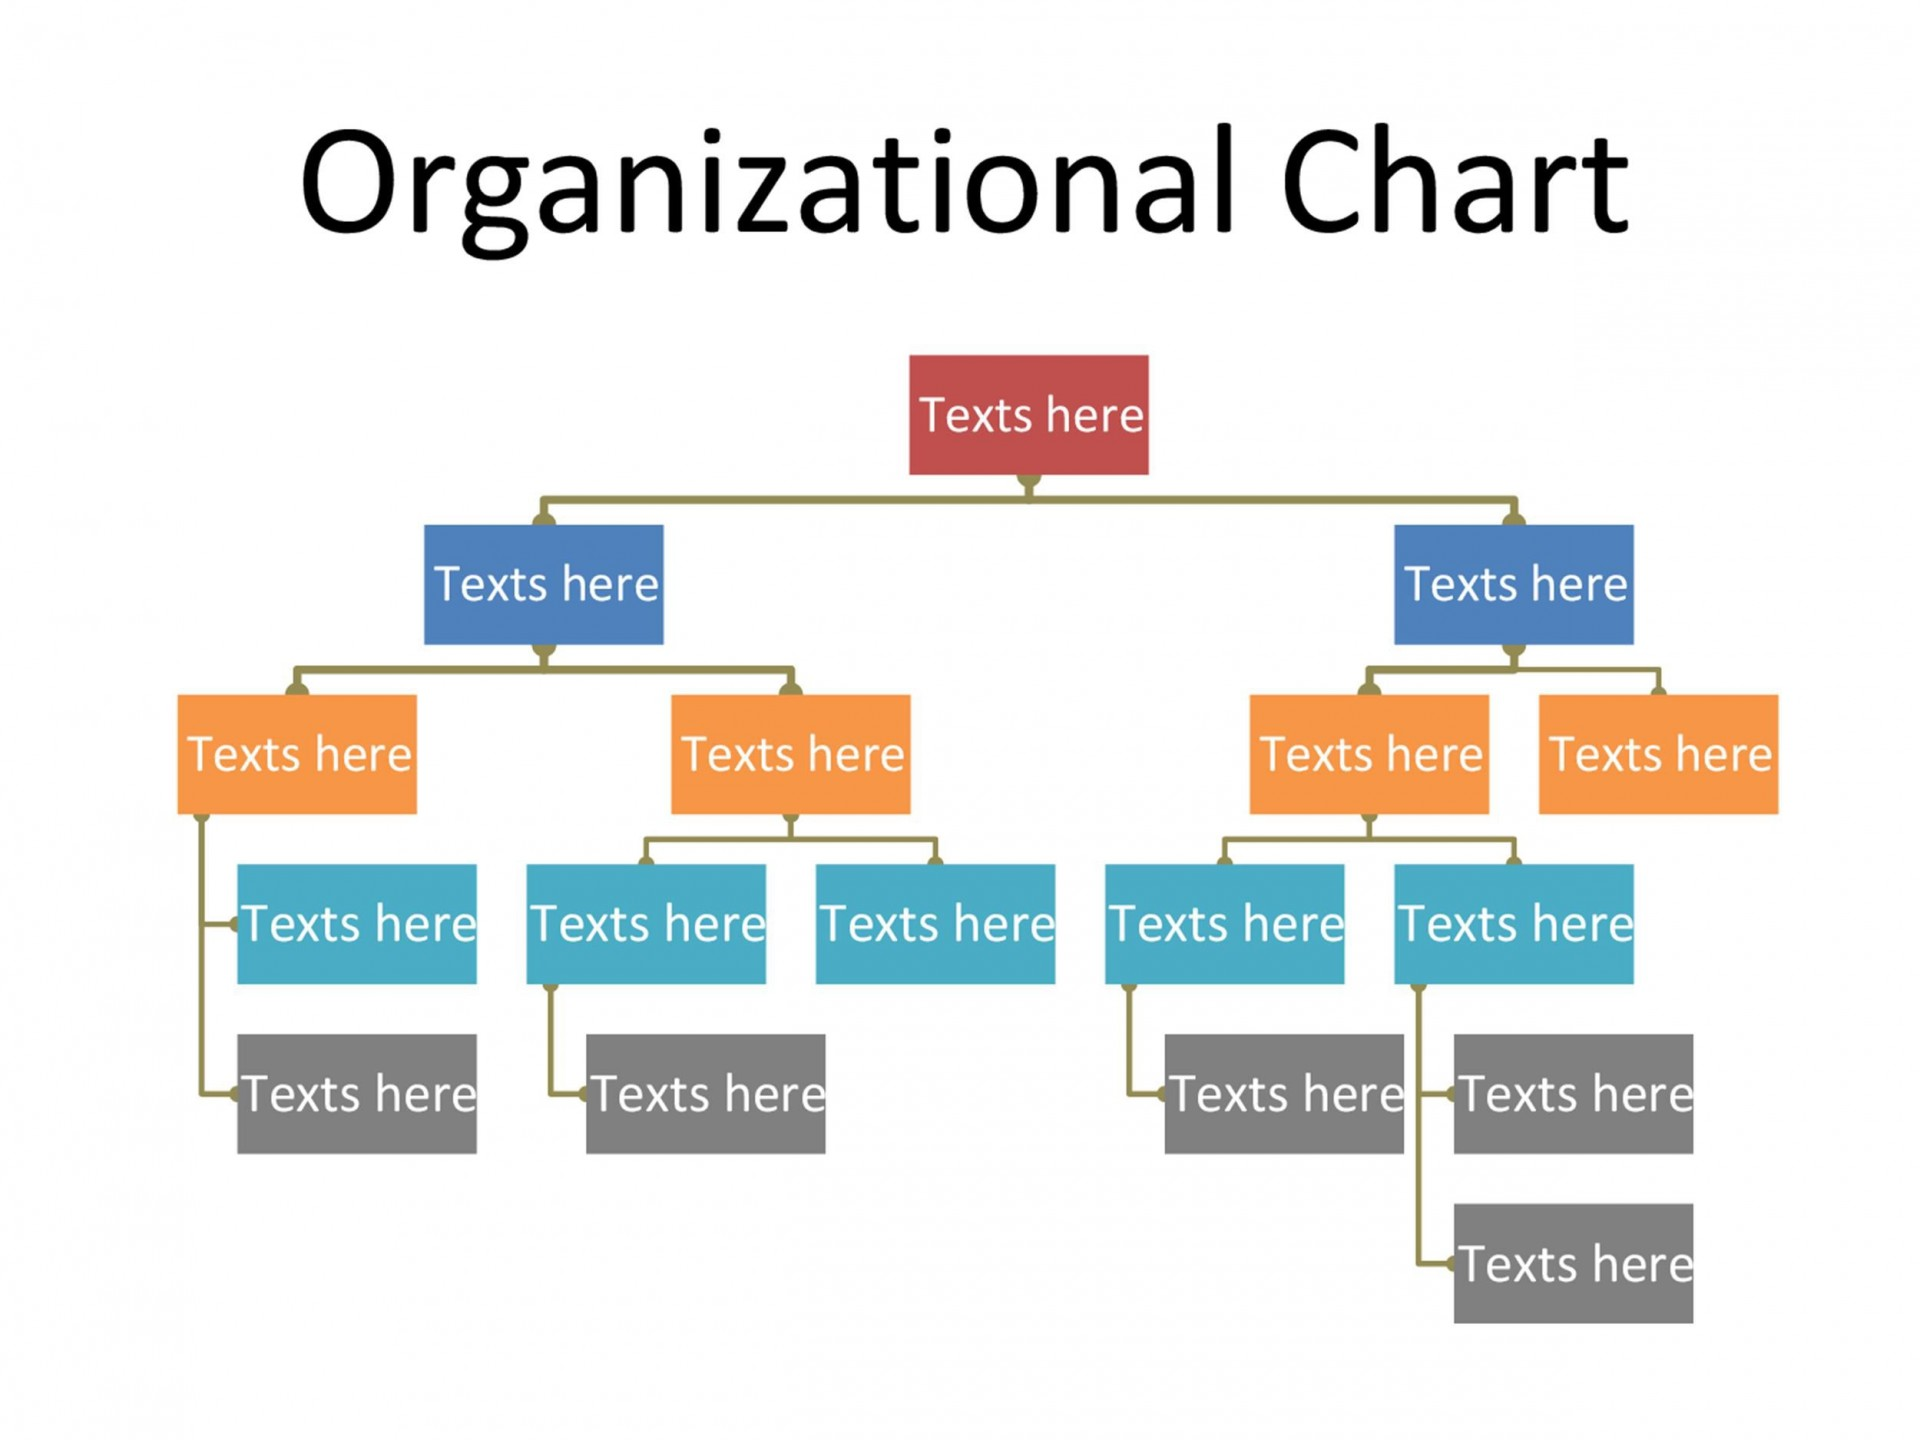 005 Simple Organizational Chart Template Word Design  2010 2007 Free Download1920